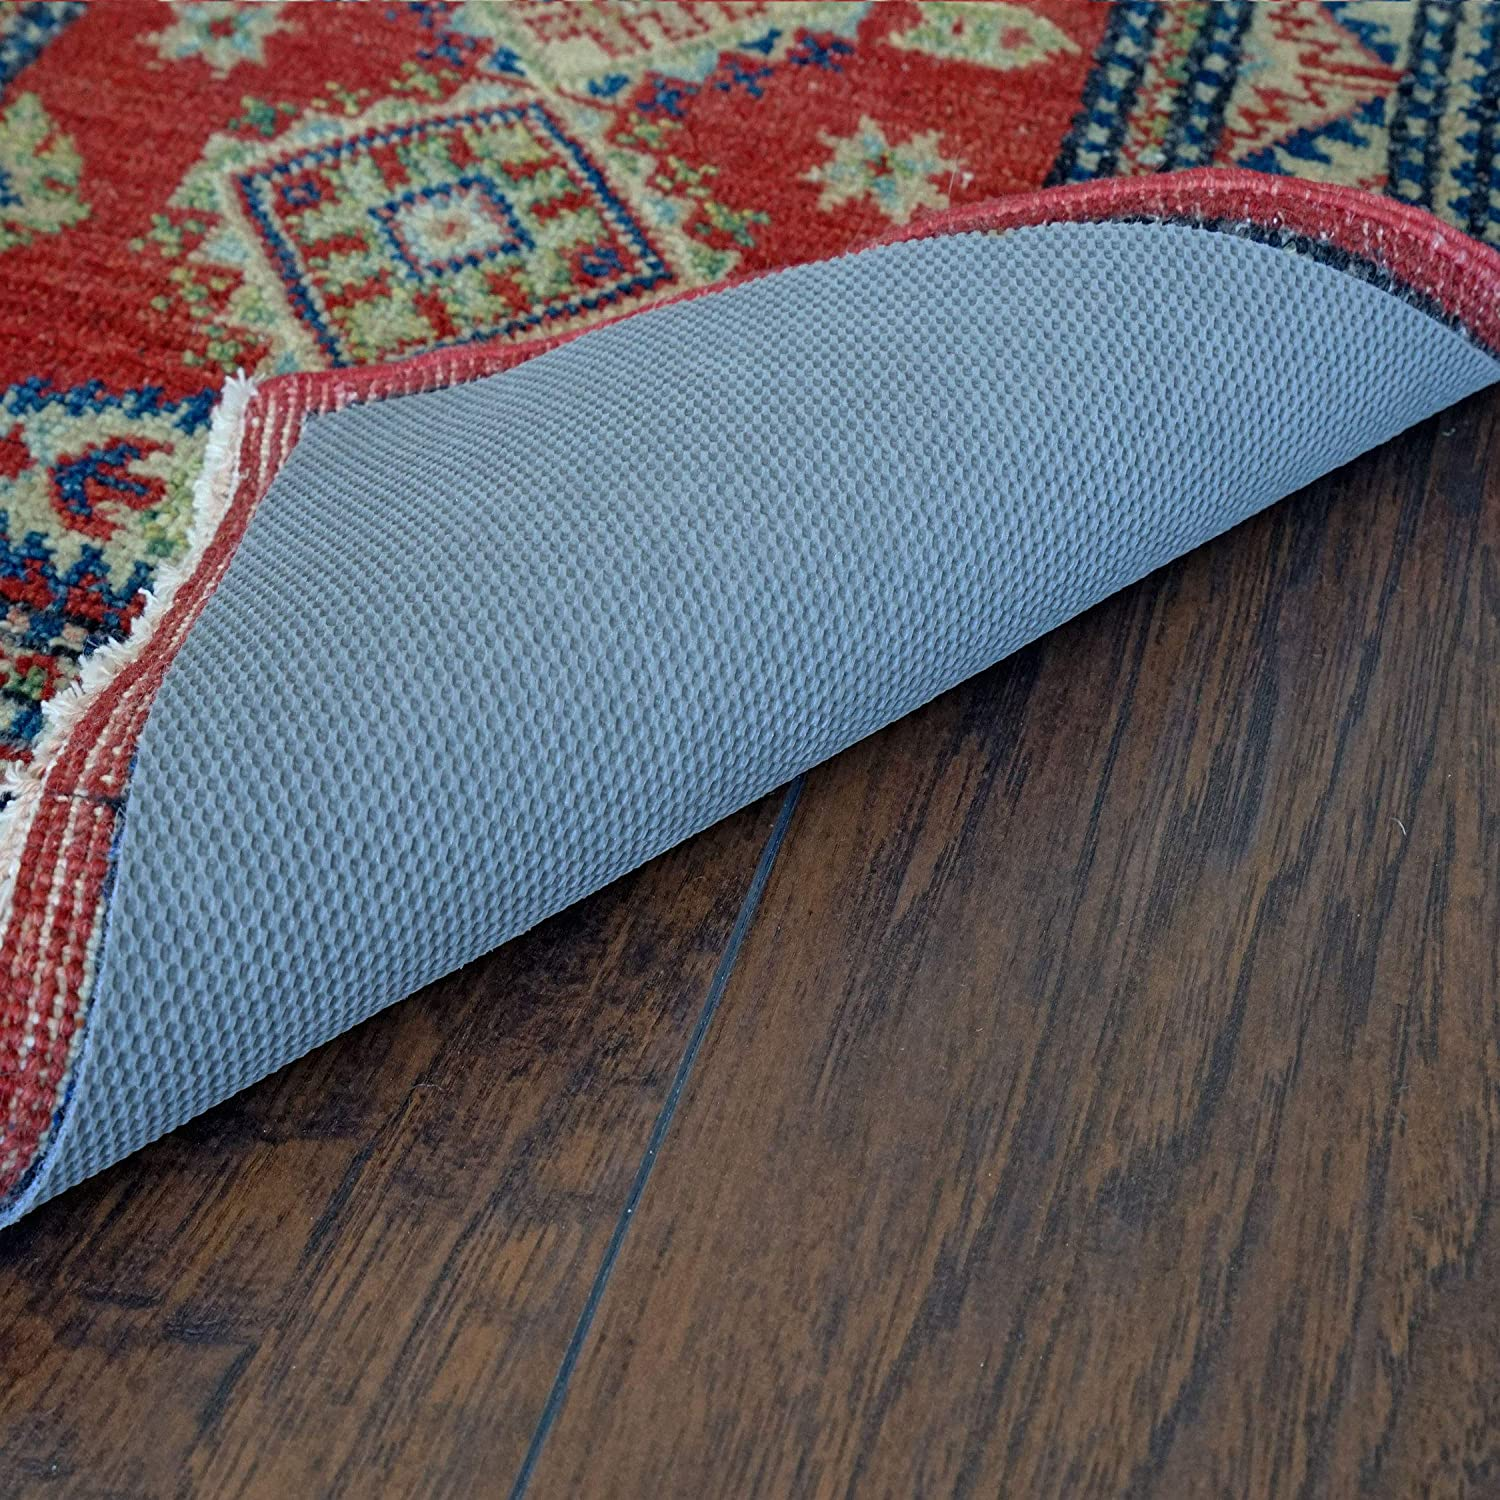 9 x 12 Gray Rug Pad Central RH-912 Thin Profile Non Slip Rug Pad